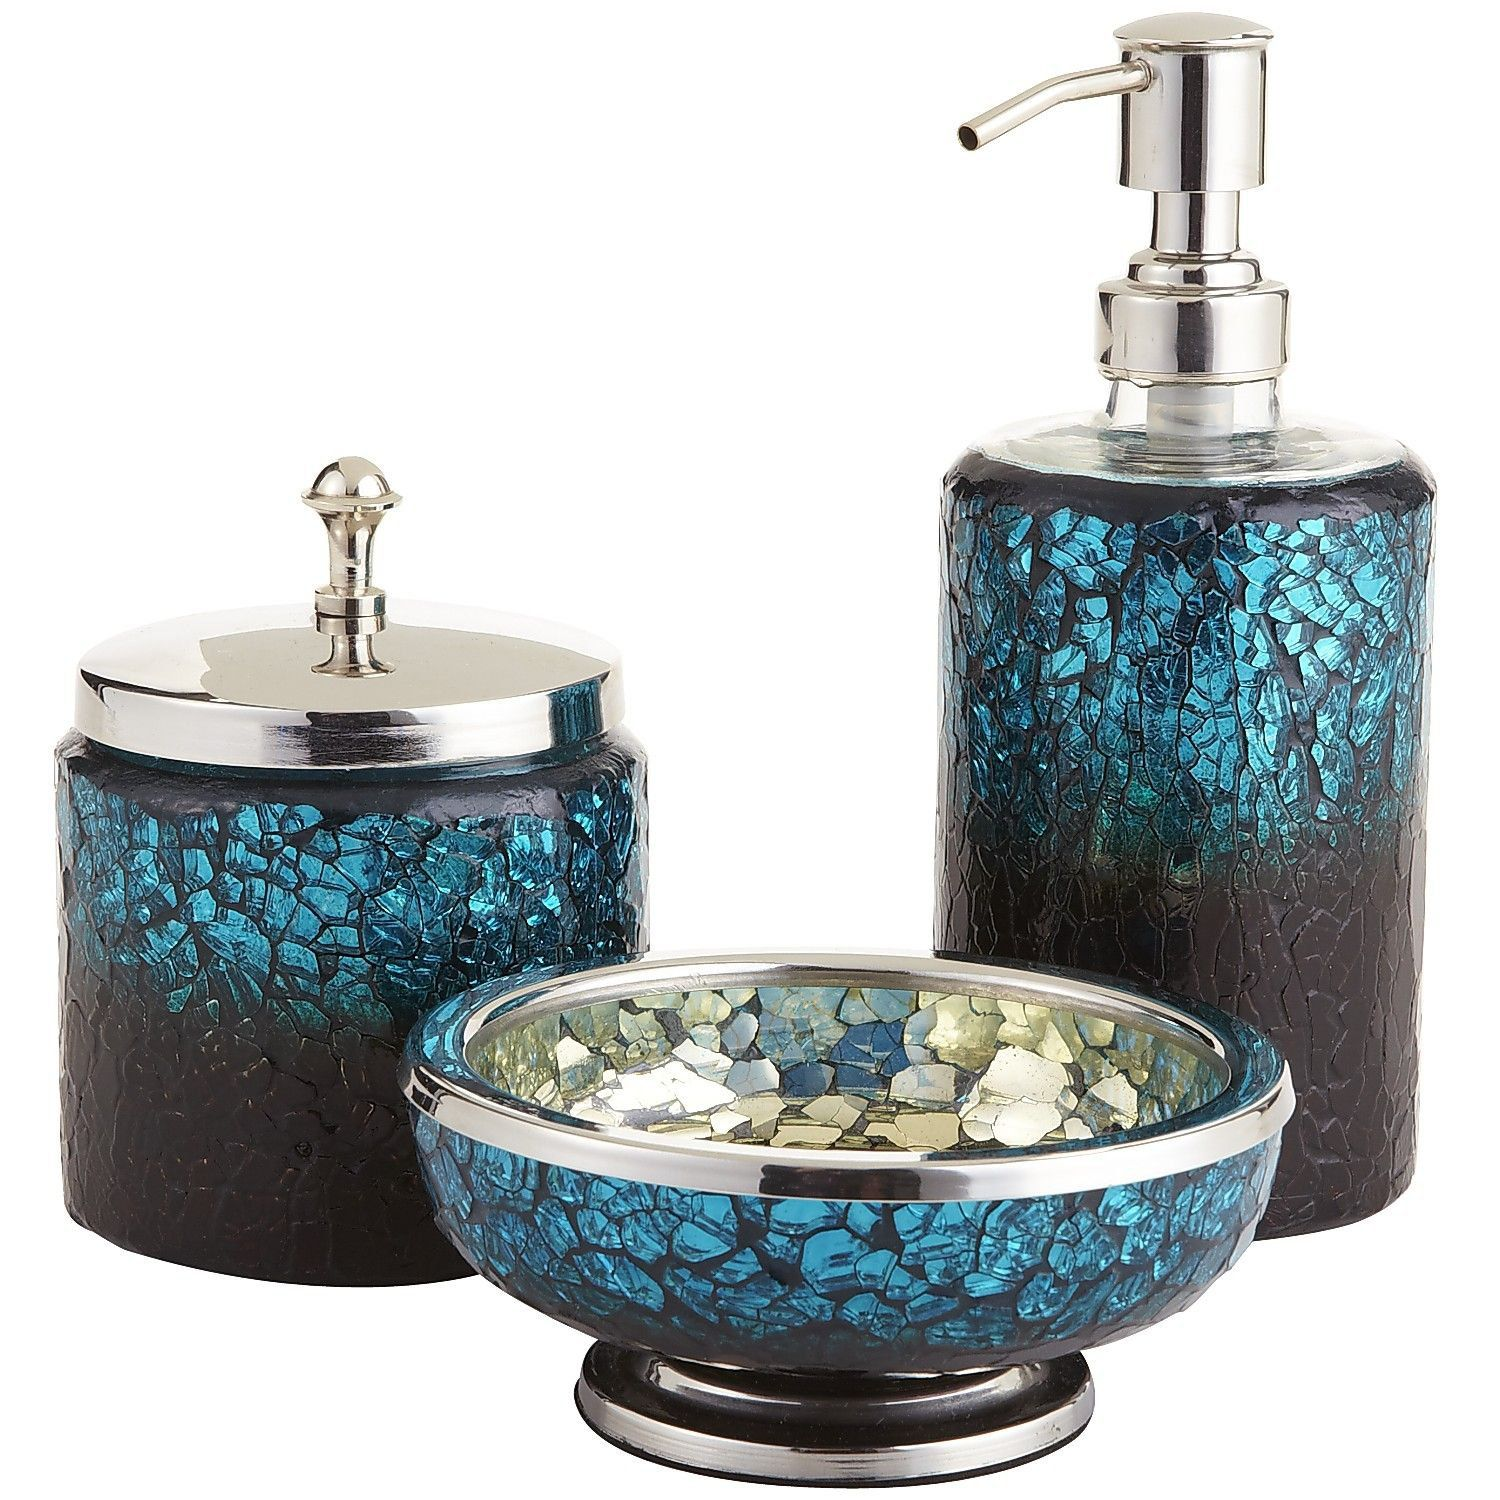 Pea Mosaic Bath Accessories More